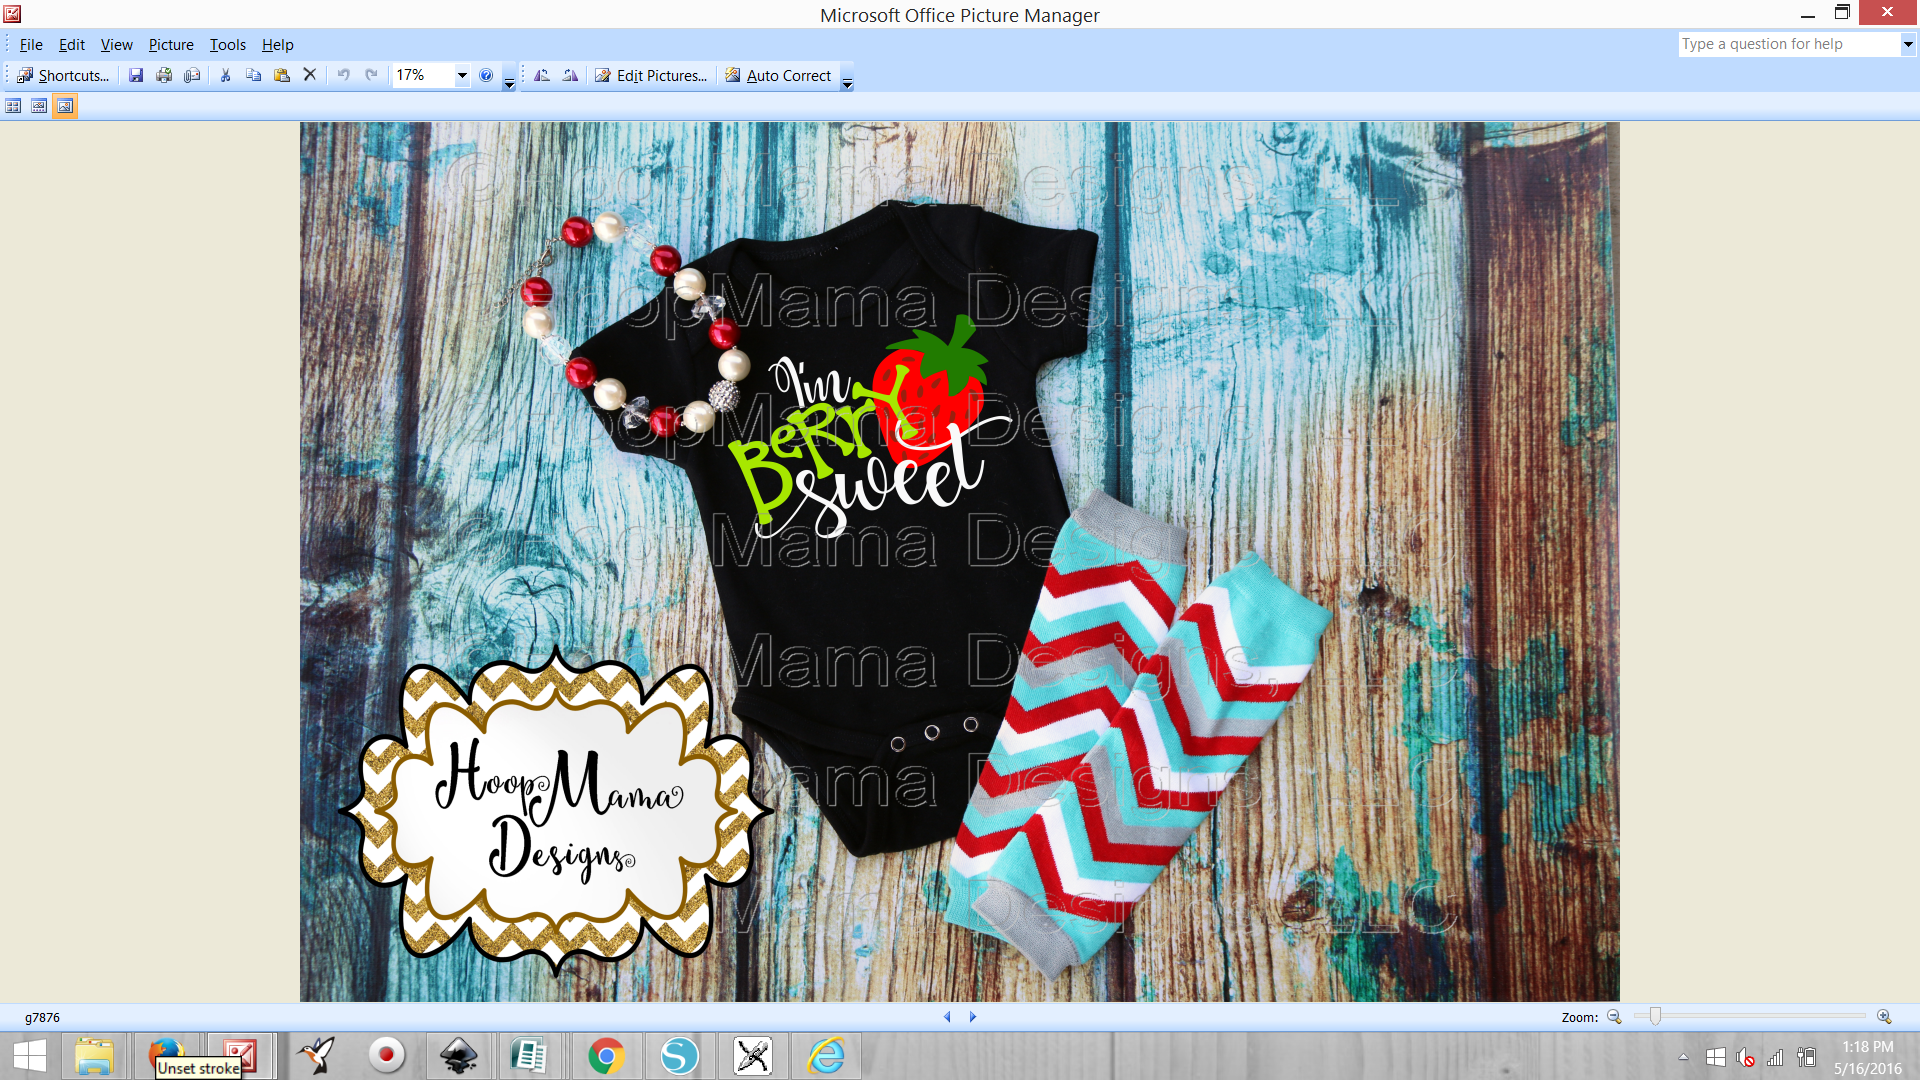 Download Hoopmama Designs Mocking Office Pictures Presentation